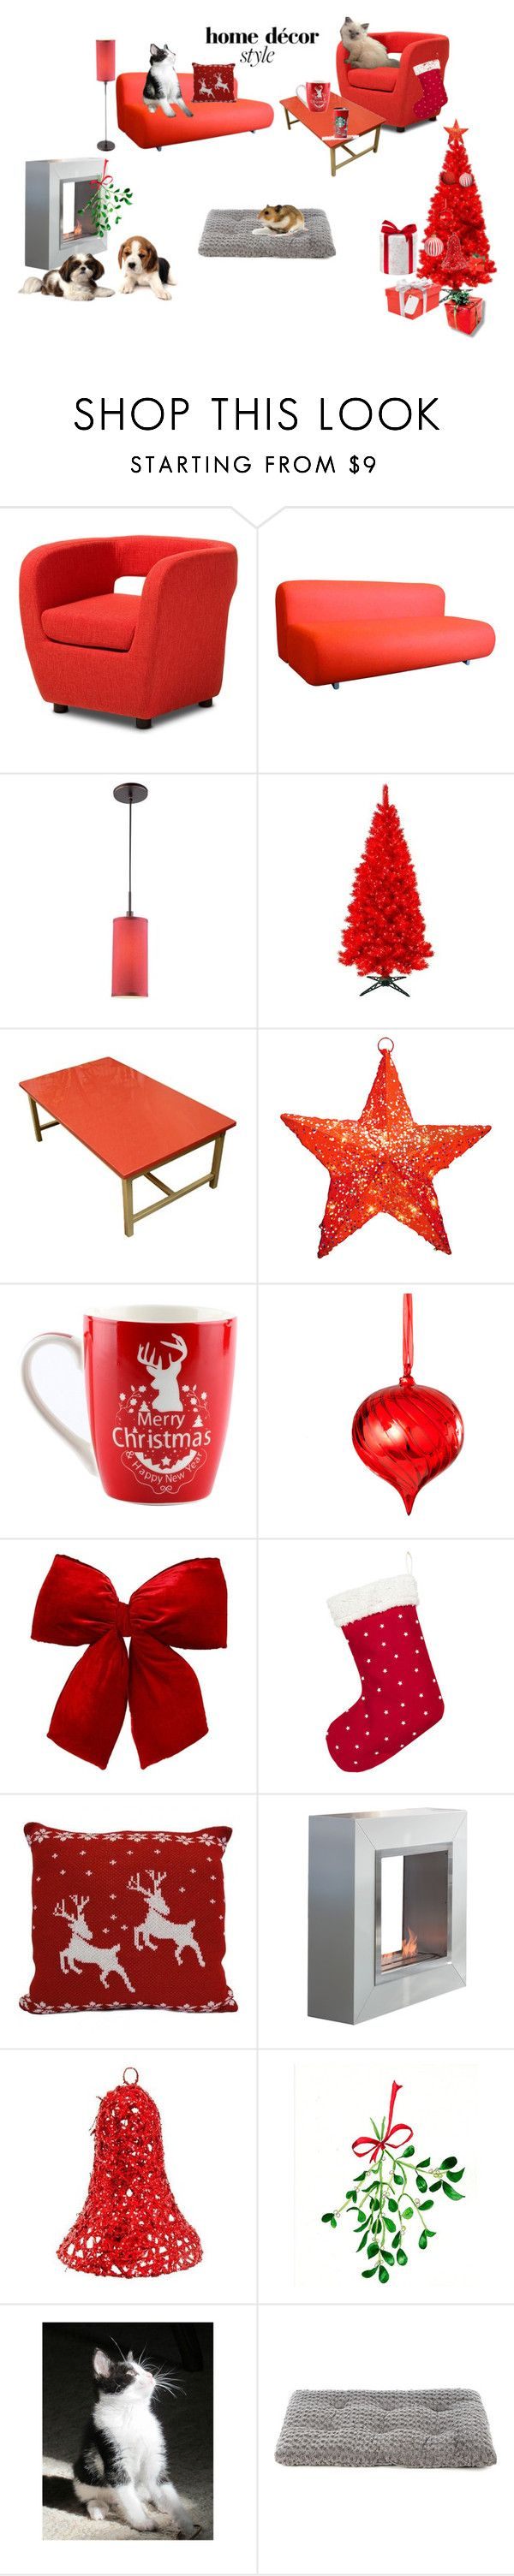 """""""Cute Red Christmas Room Decor."""" by neyahd on Polyvore featuring interior, interiors, interior design, home, home decor, interior decorating, Baxton Studio, Knoll, Woodbridge Lighting and General Foam"""